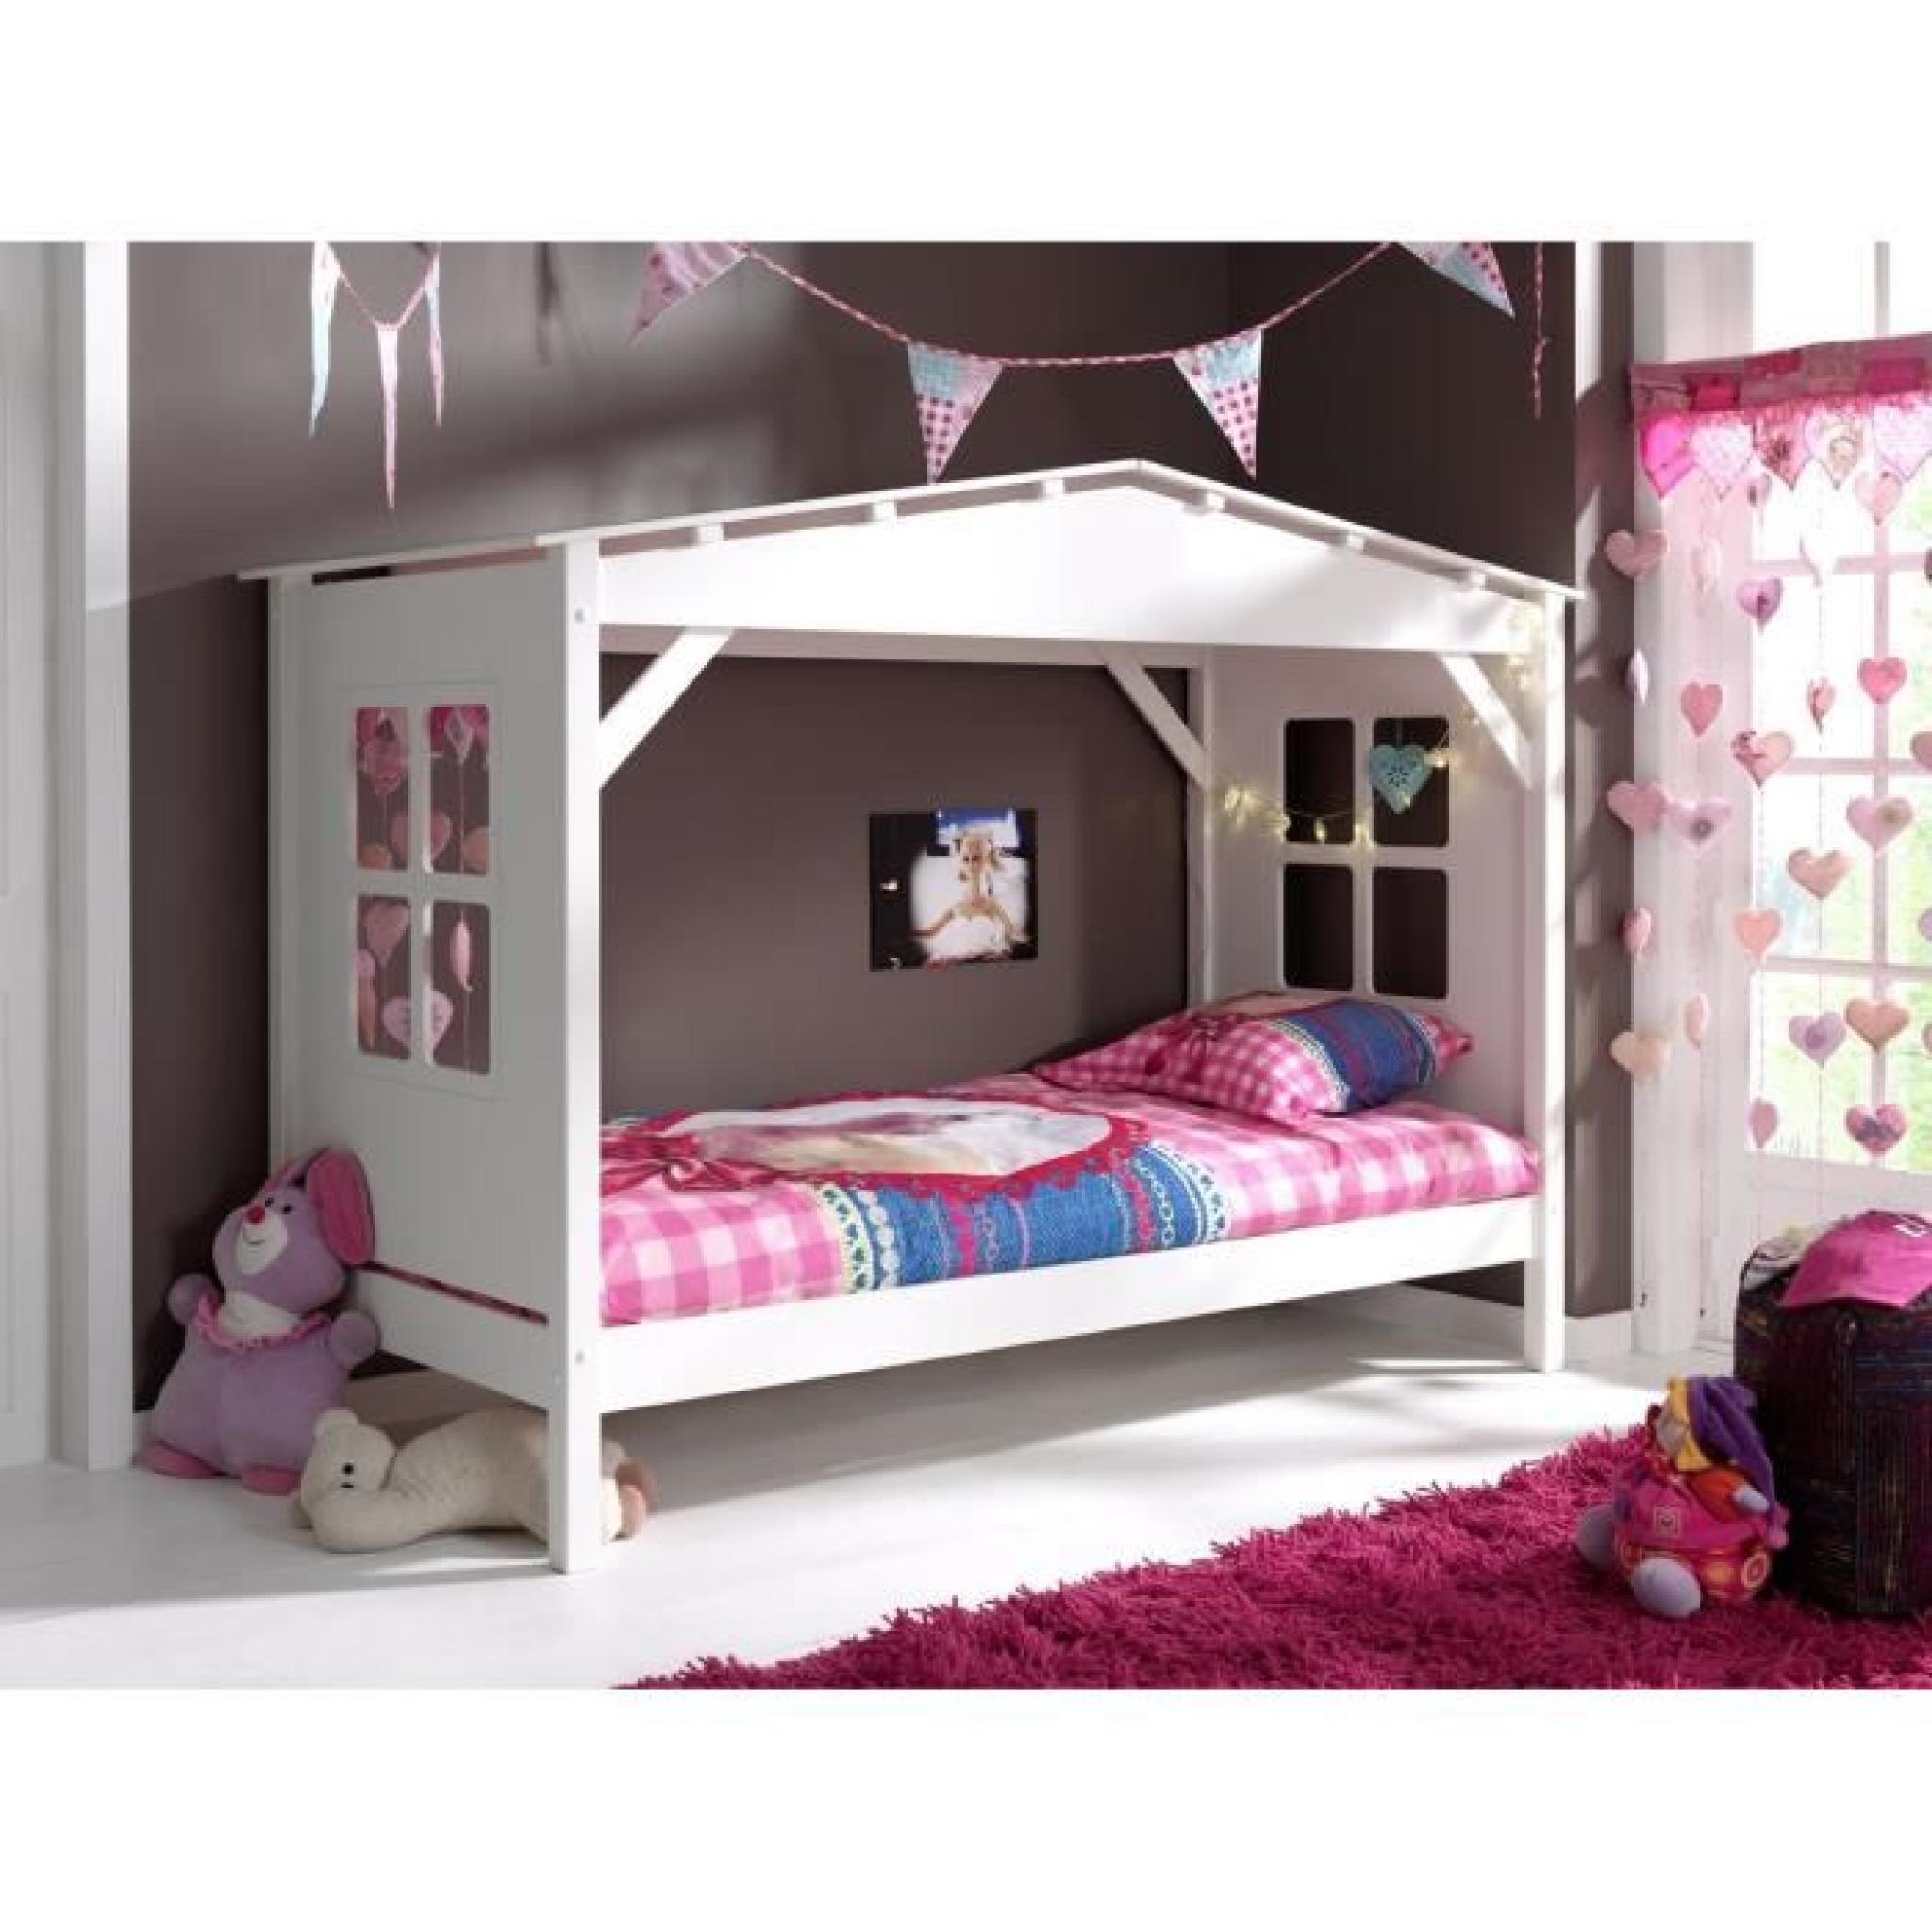 pino lit enfant cabane et lit gigogne 90x200 blanc. Black Bedroom Furniture Sets. Home Design Ideas